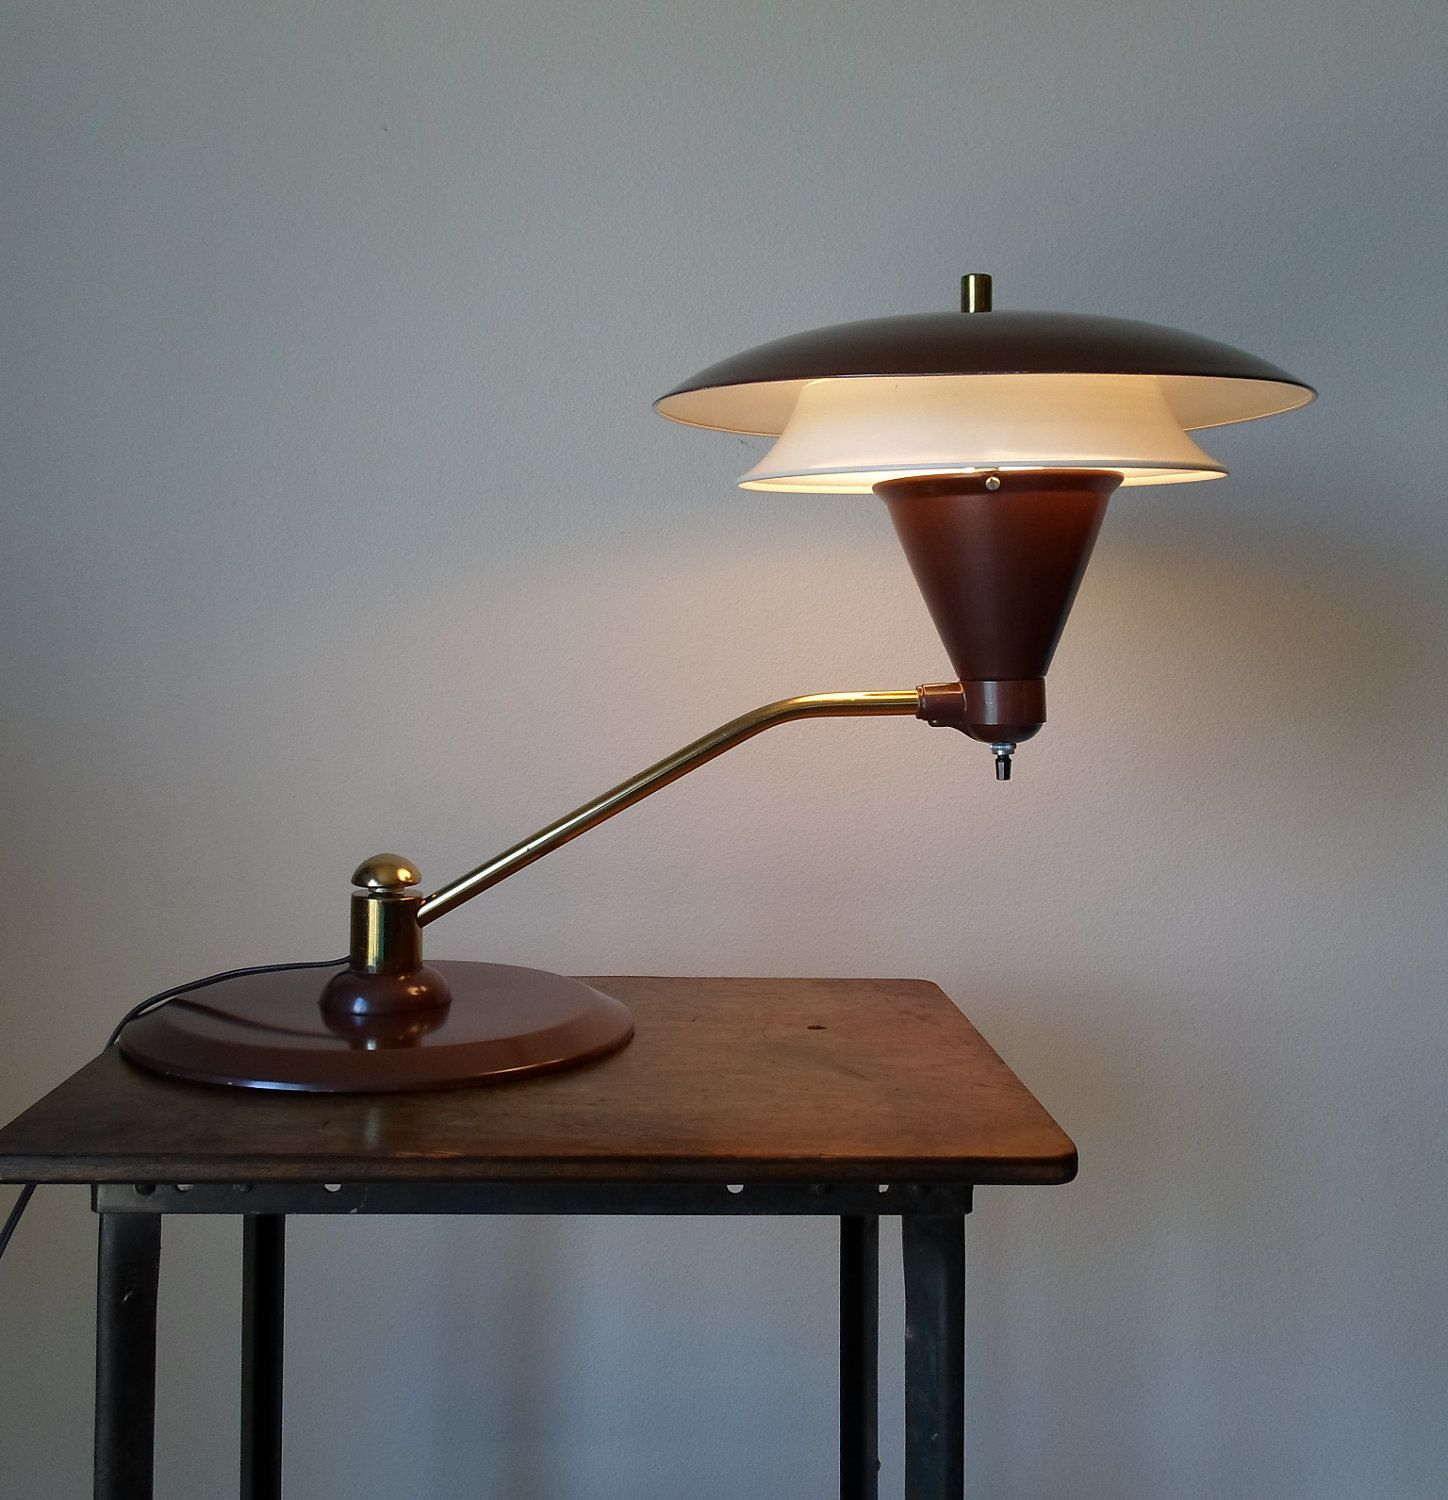 Vintage Mid Century Modern Flying Saucer Desk Lamp Spaceage Eames Era Brass And Brown Space Ship Table Lamp 195 00 Vintage Lamps Vintage Appliances Lamp